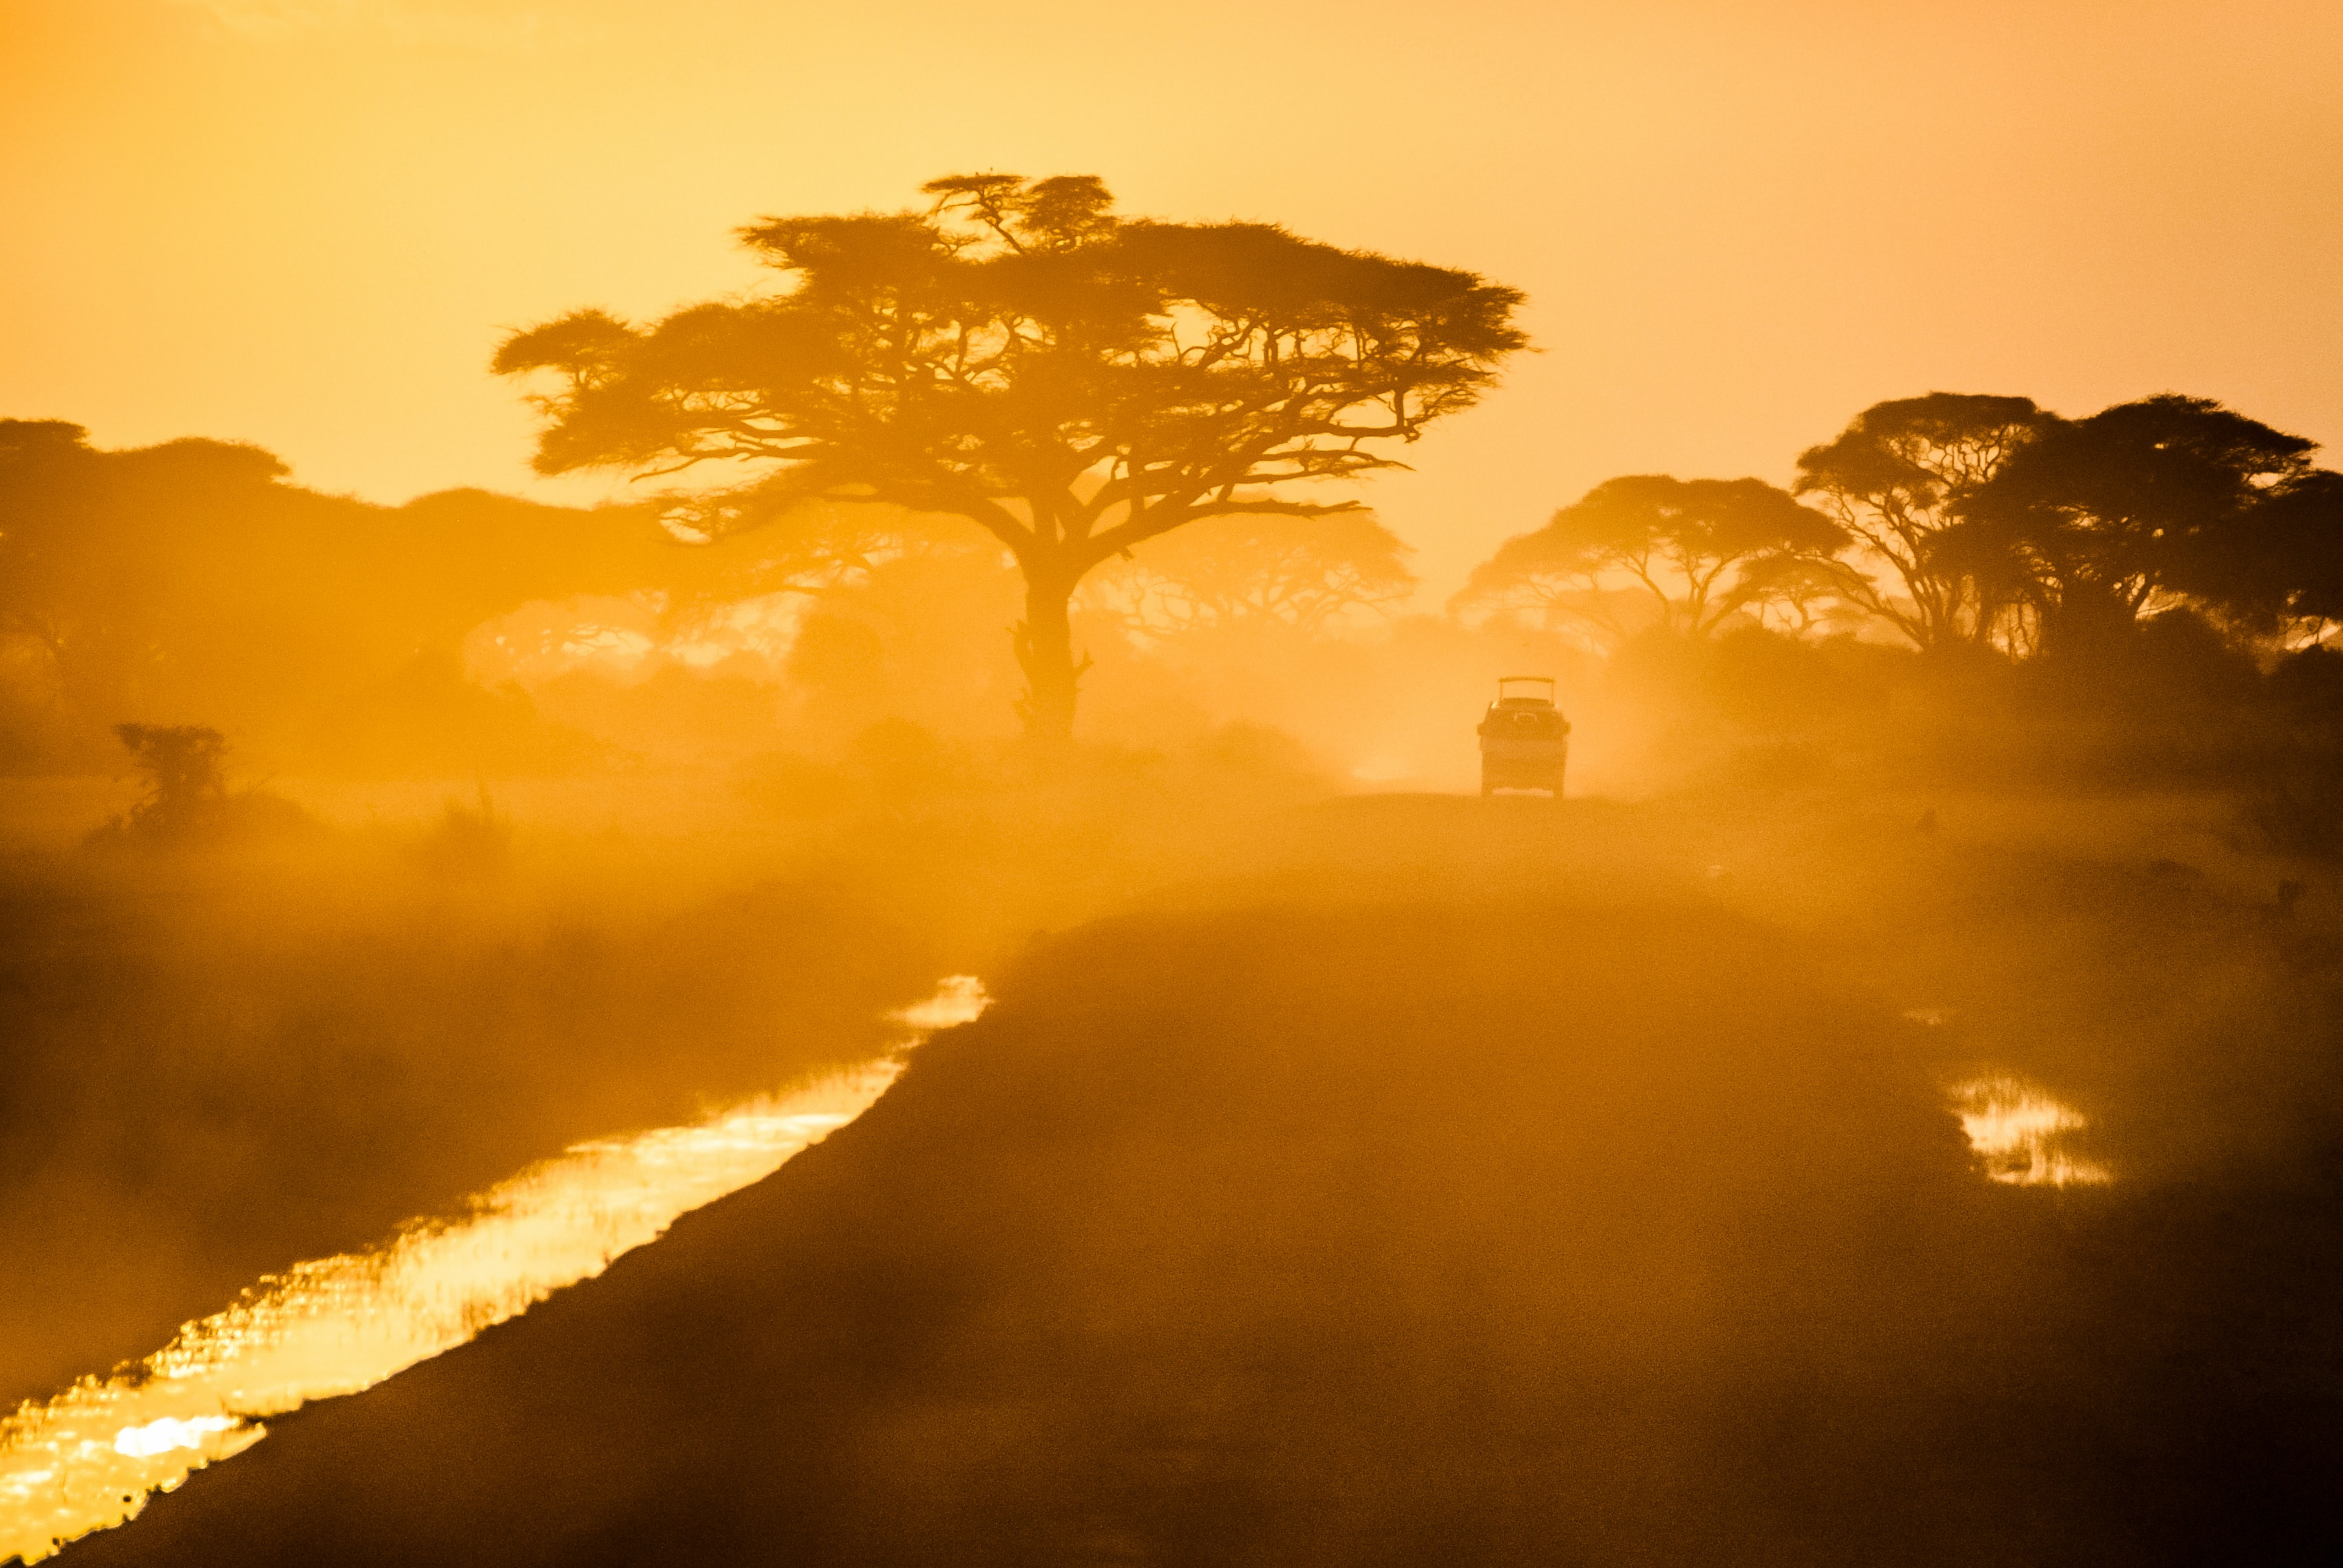 A vehicle driving down a lane and kicking up dust in Kajiado, with silhouetted trees and a stream in the foreground